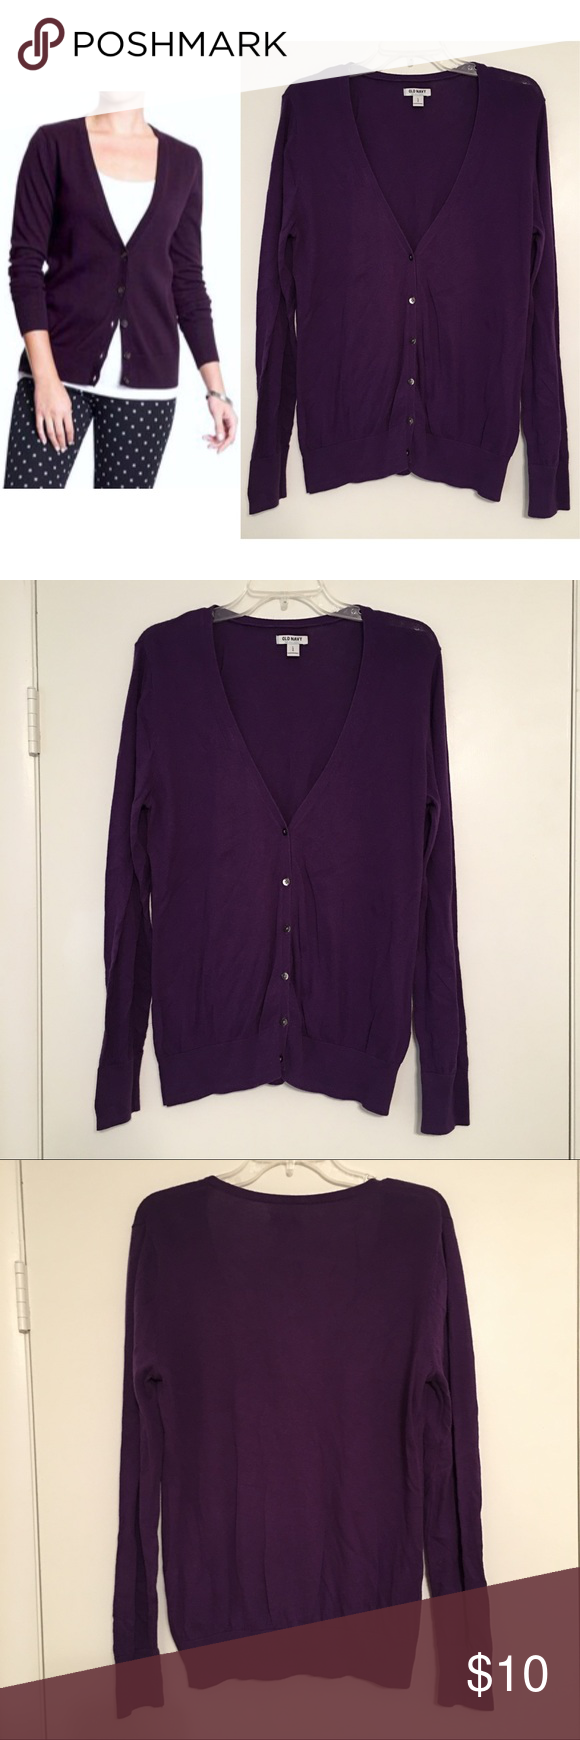 Old Navy Dark Purple V-Neck Cardigan | Navy, Sweater cardigan and ...